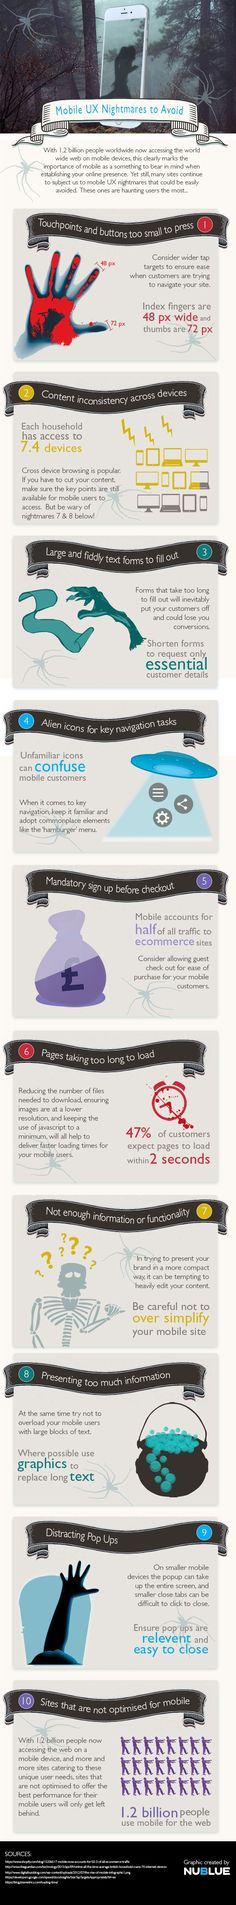 10 mobile UX nightmares to avoid | Infographic | Creative Bloq